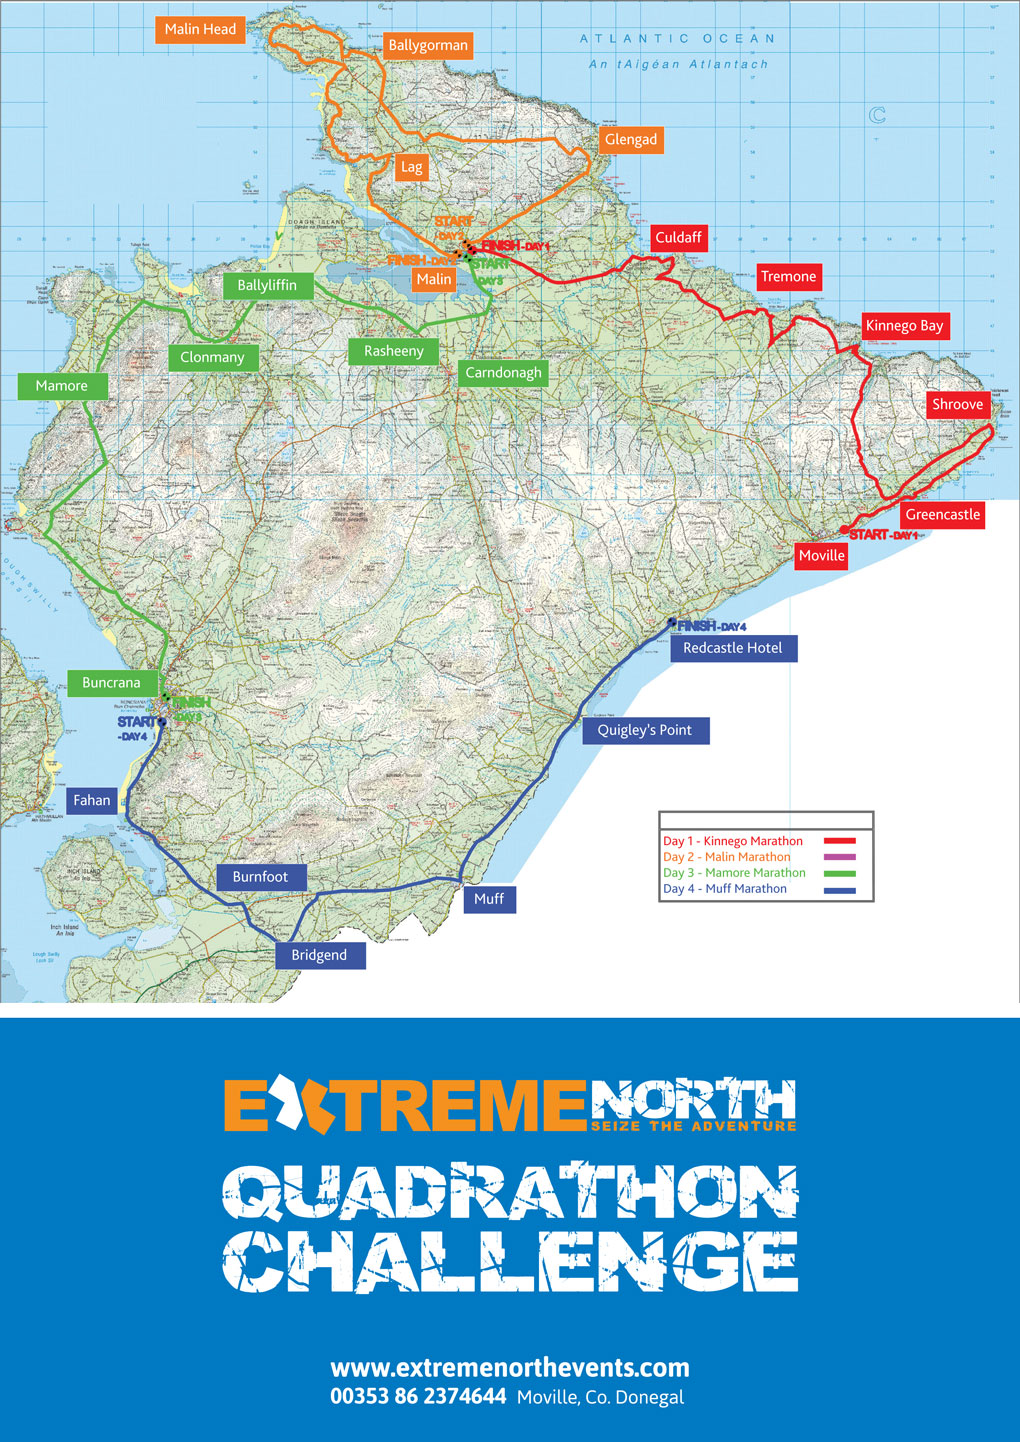 Location Inishowen Donegal Extreme North Events Click On Image To View Full Size